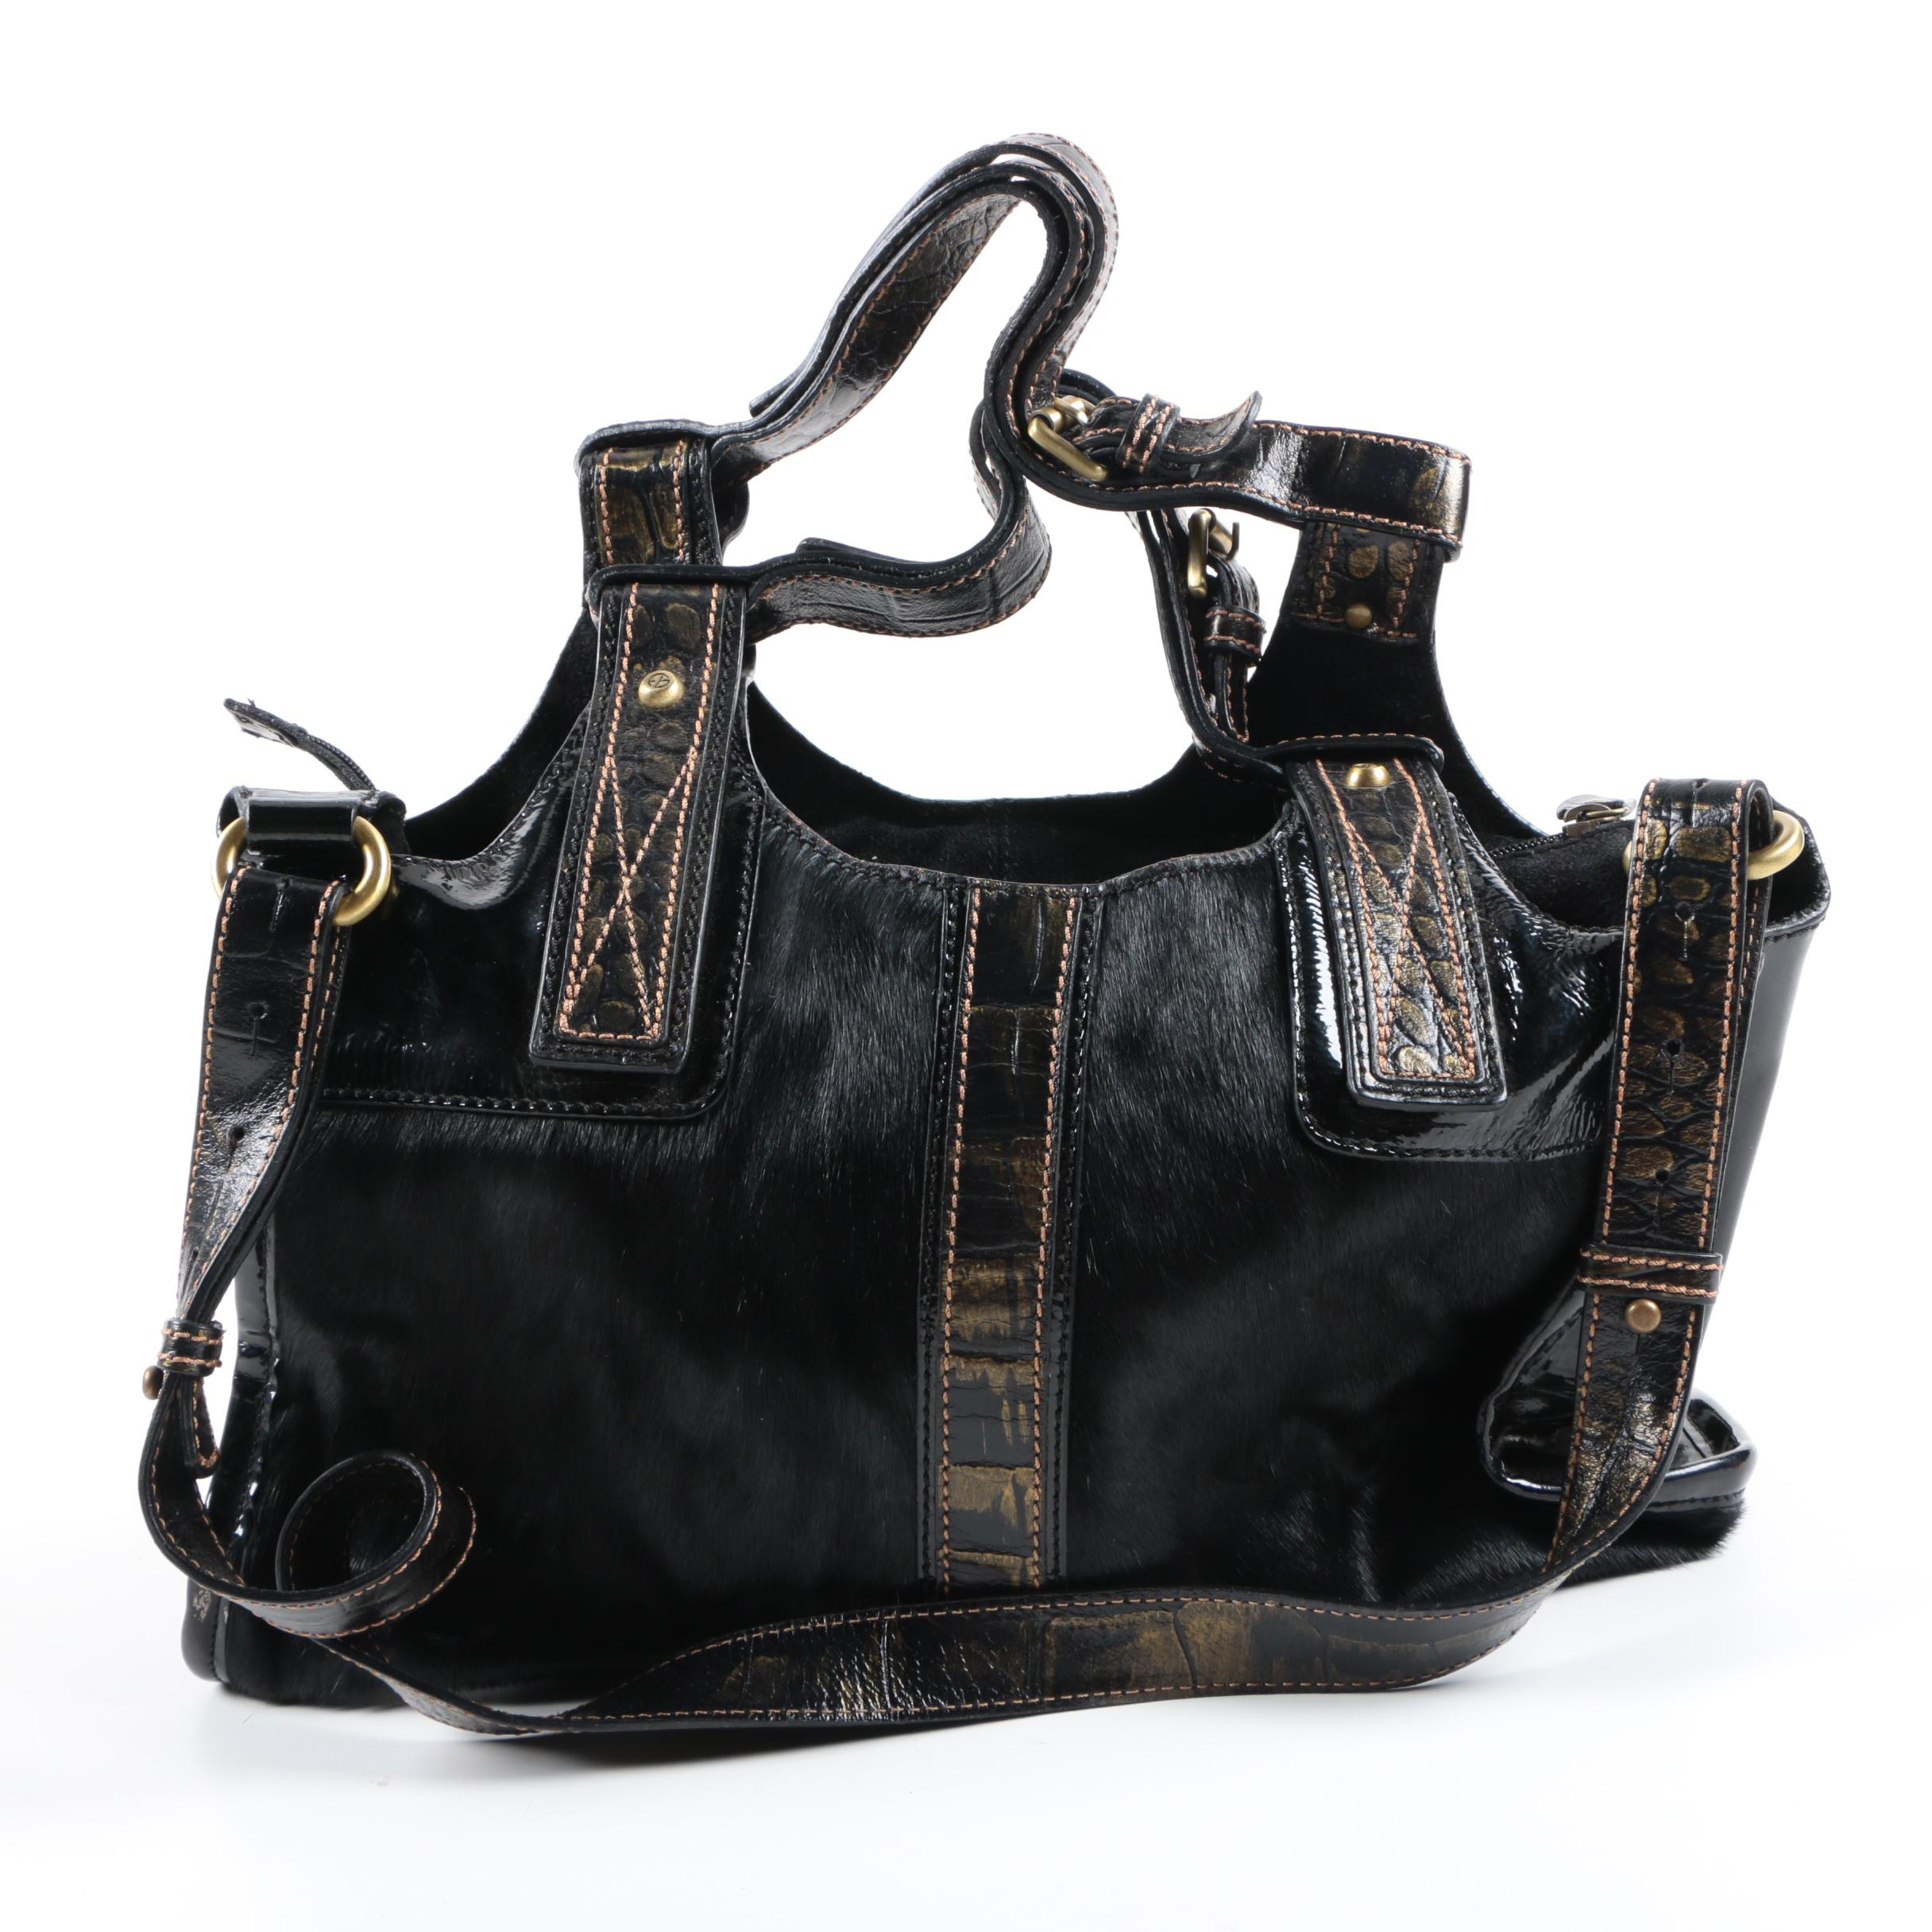 Francesco Biasia Calf Hair Satchel